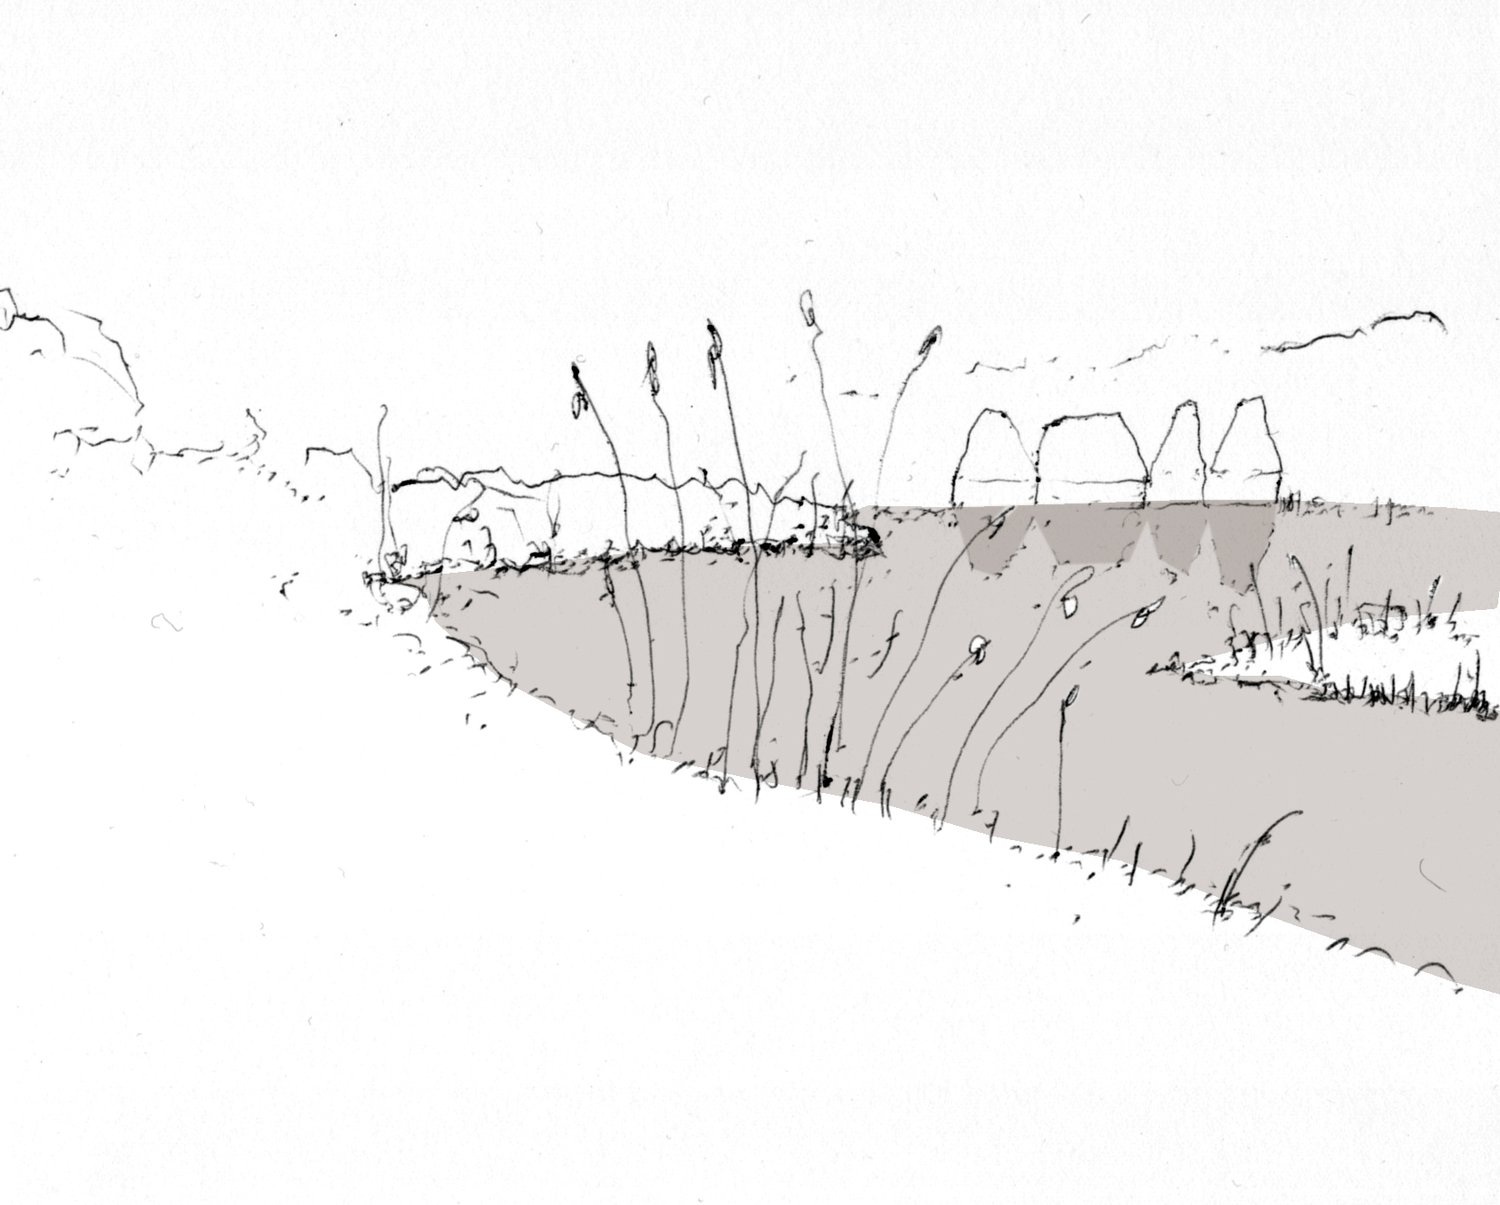 AKA_027_Brockholes_sketch_01.jpg